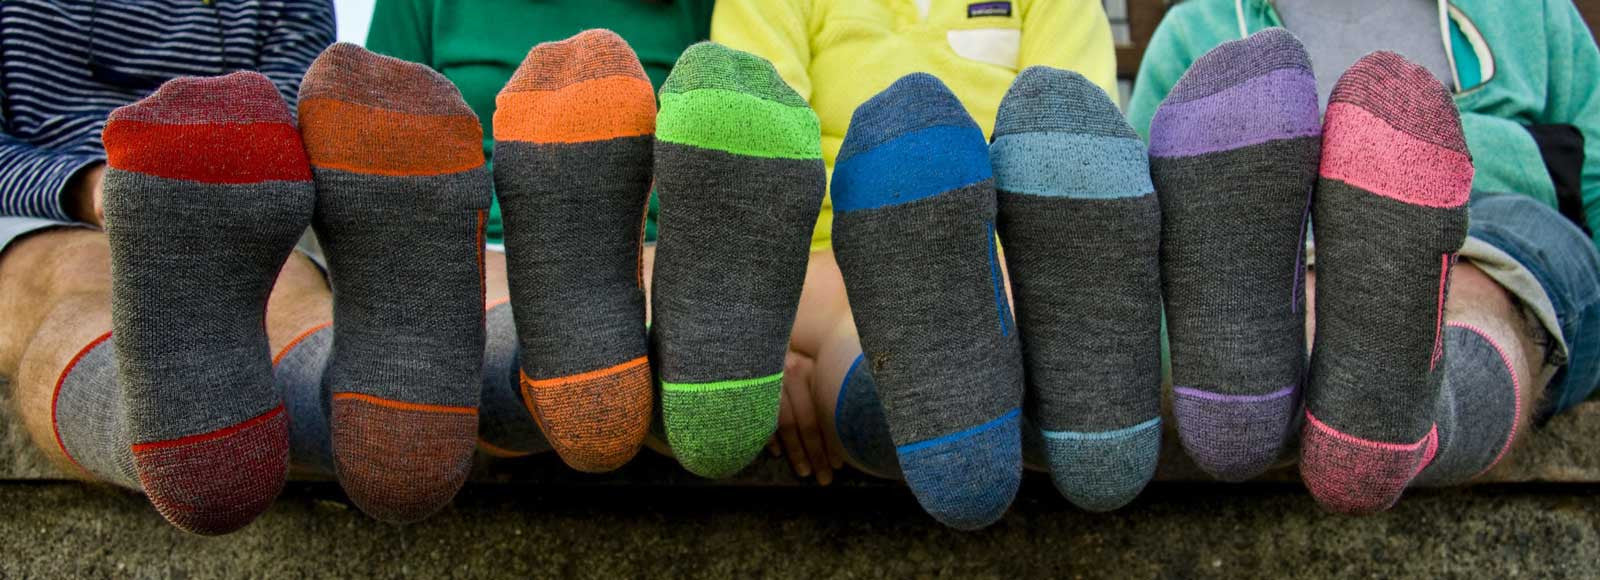 CloudLine Socks in Bold Colors for Bold Adventures